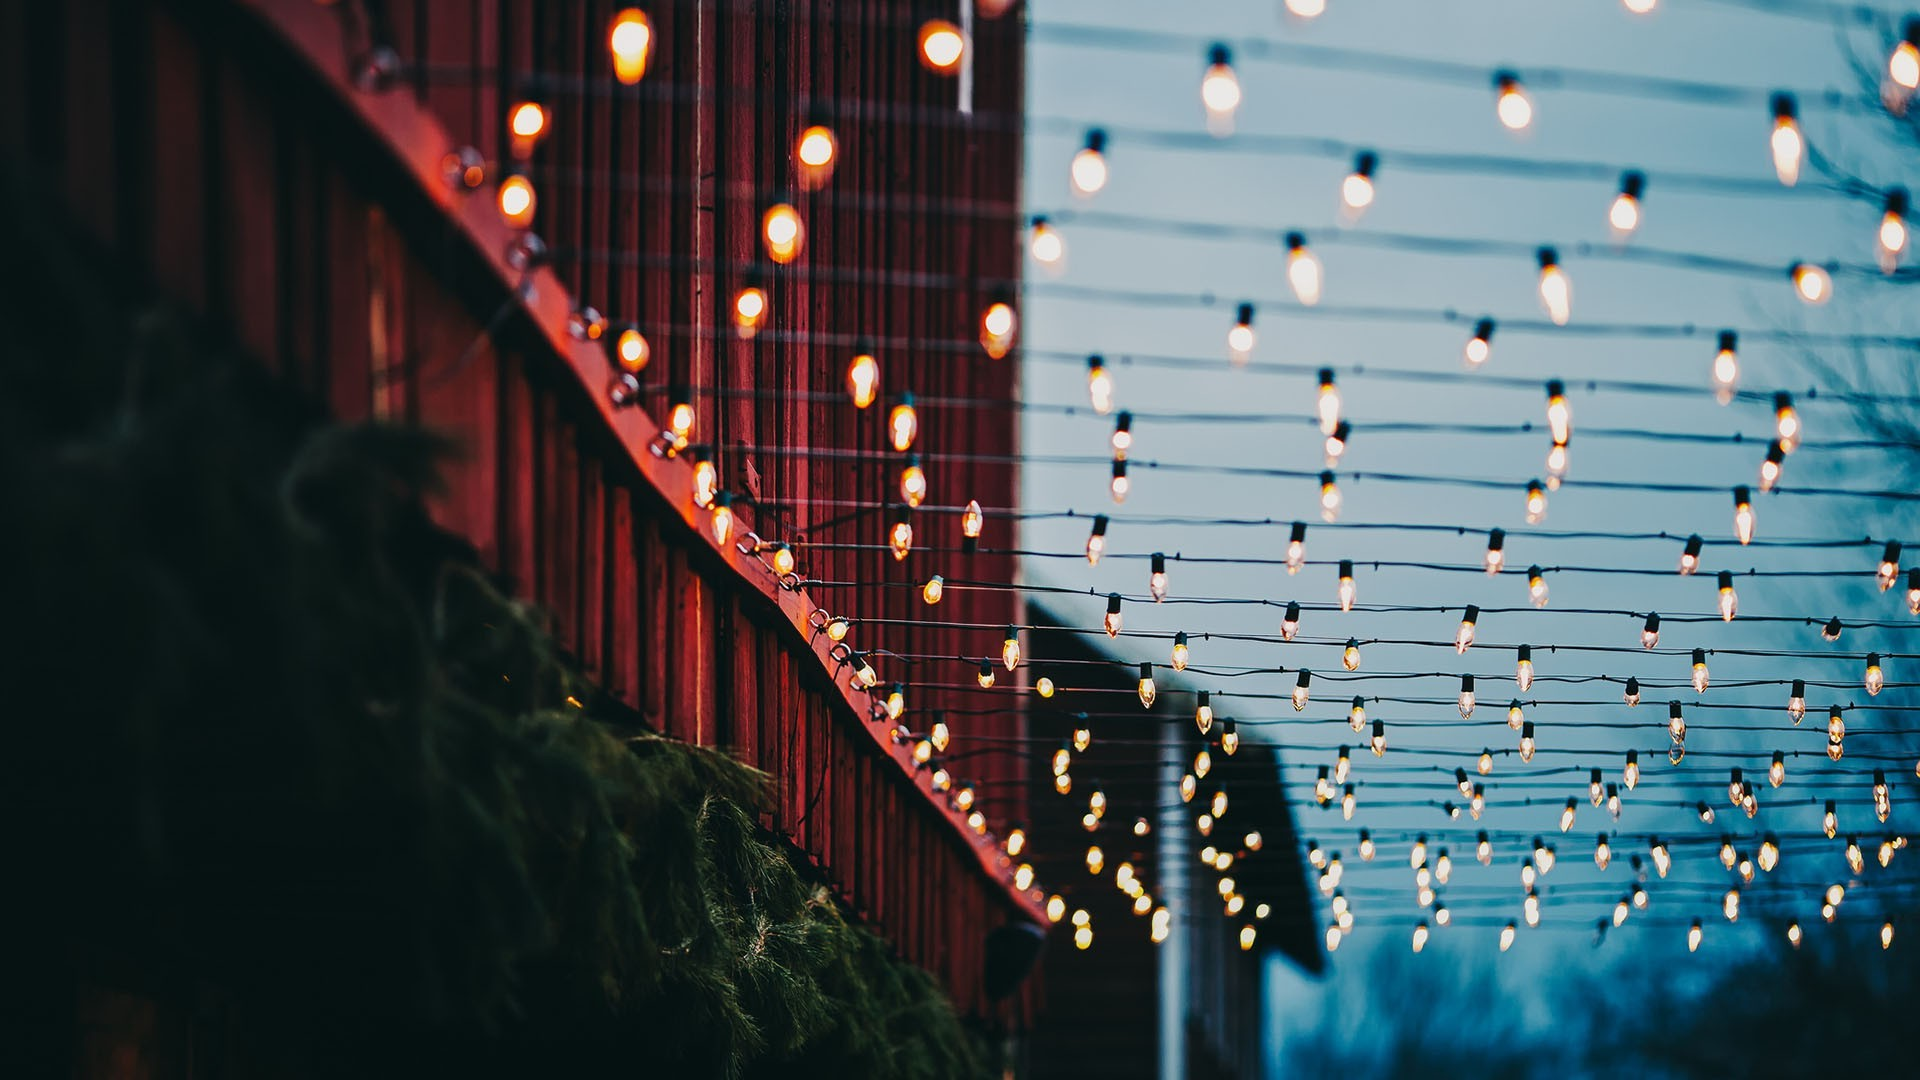 Empire State Building Wallpaper Hd Lights Christmas Lights Bokeh Wires Plants Building